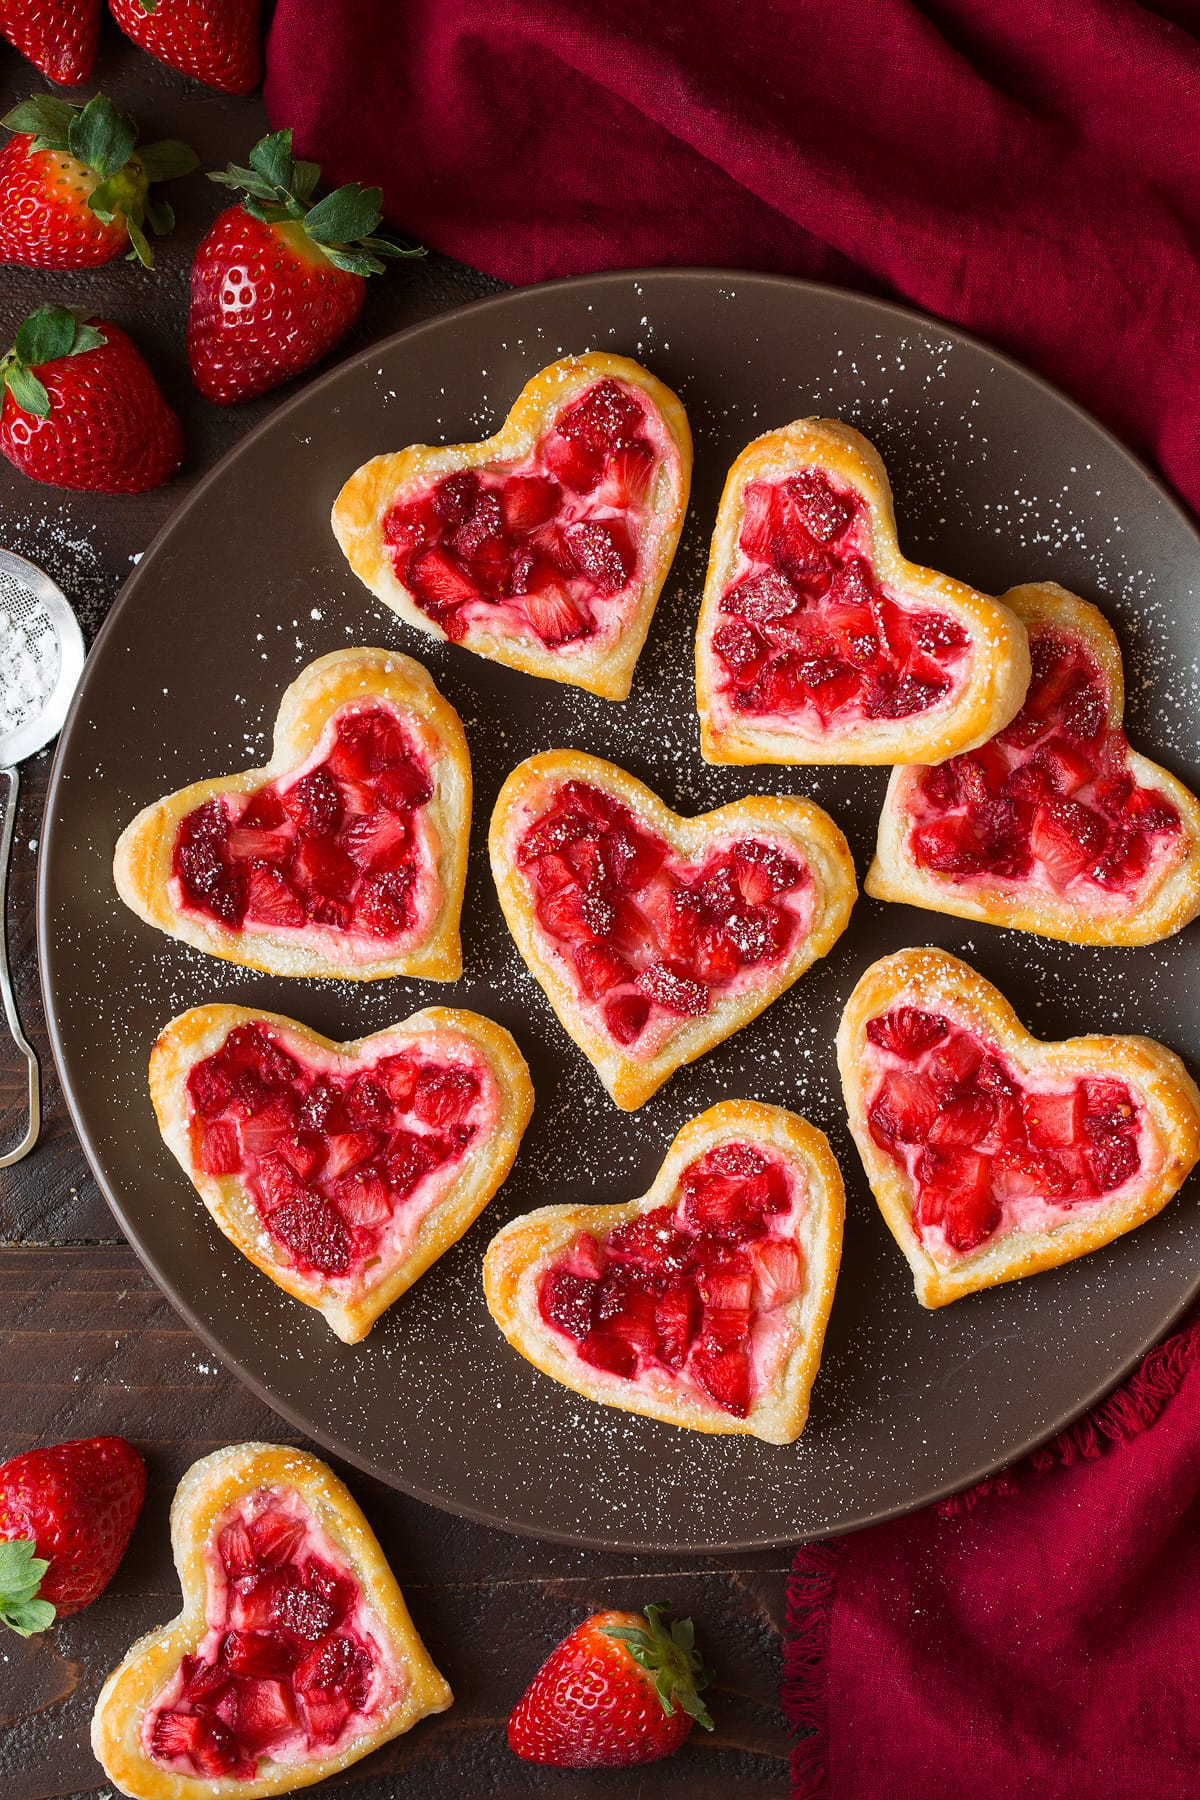 Breakfast Pastries cut into heart shapes, topped with sweetened cream cheese and strawberries.